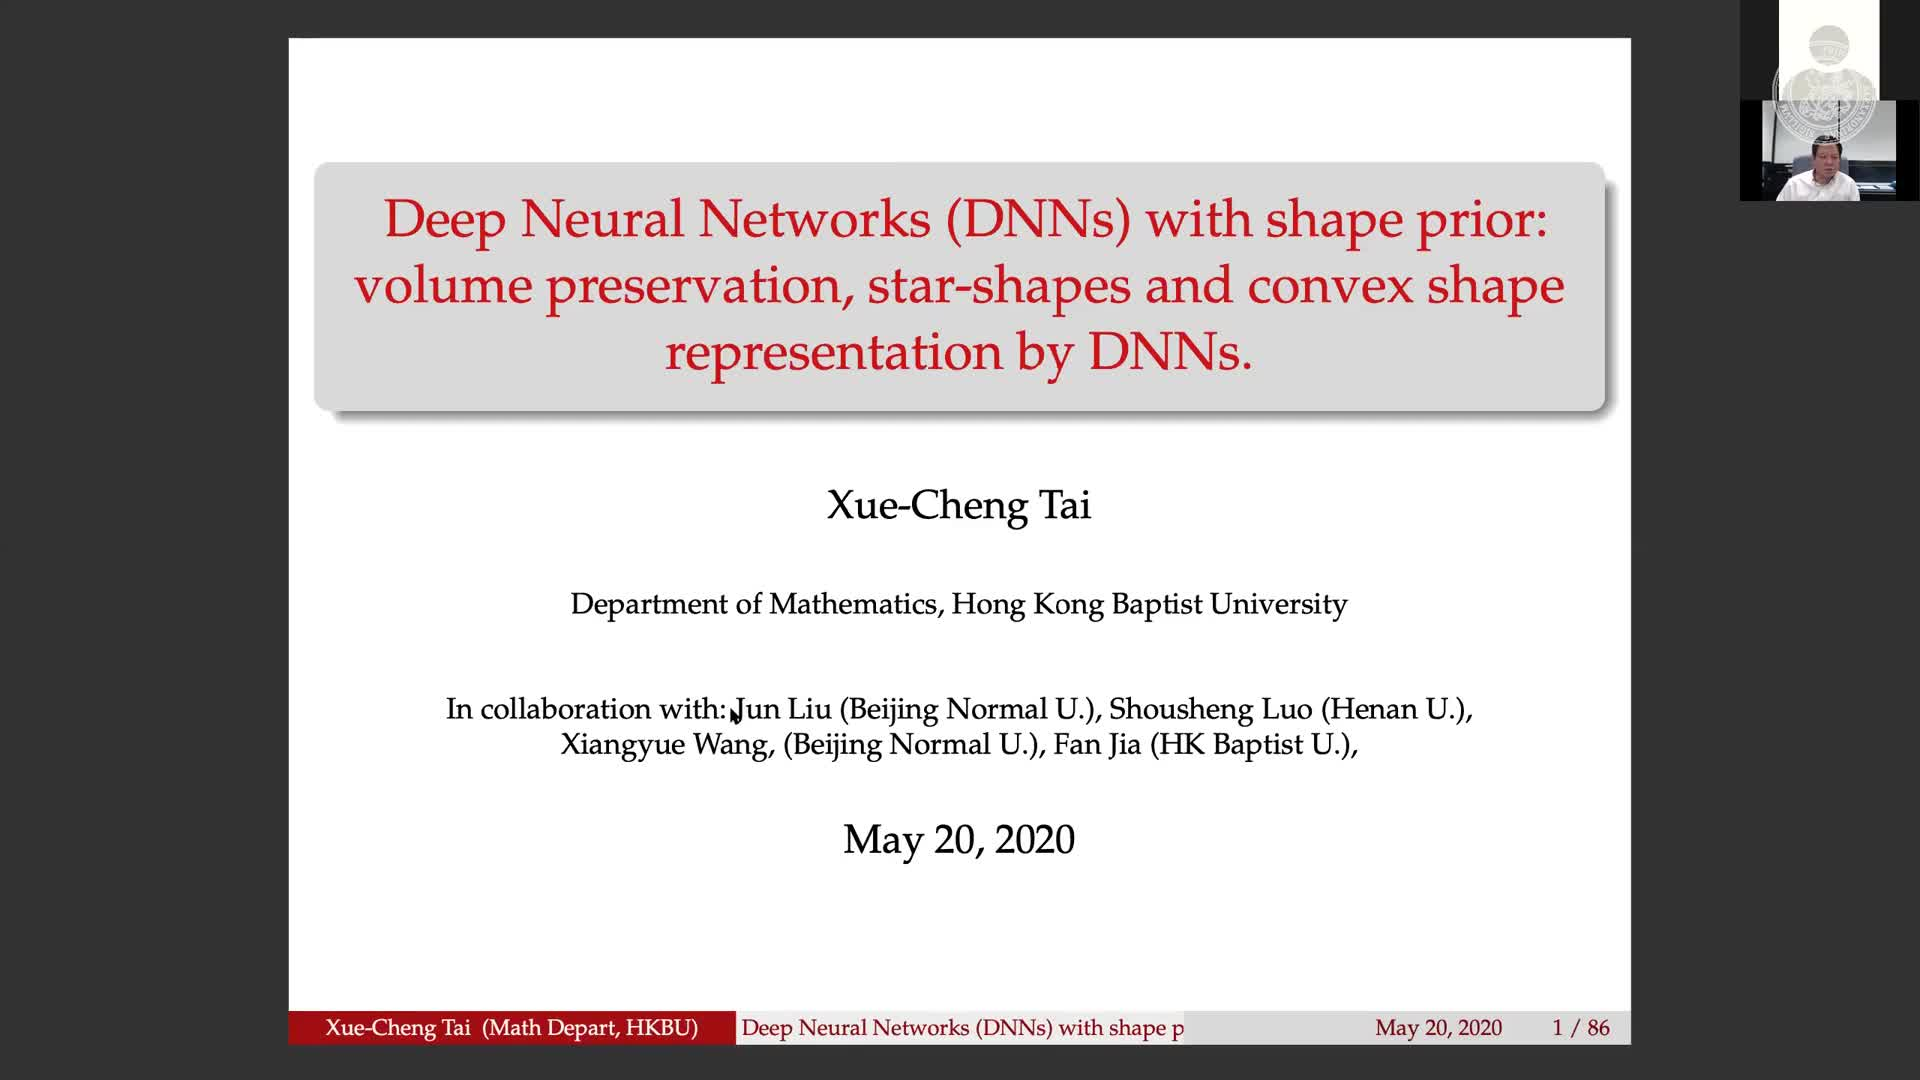 Deep Neural Networks (DNNs) with shape prior: volume preservation, Star-shapes and convex shape representation by DNNs preview image